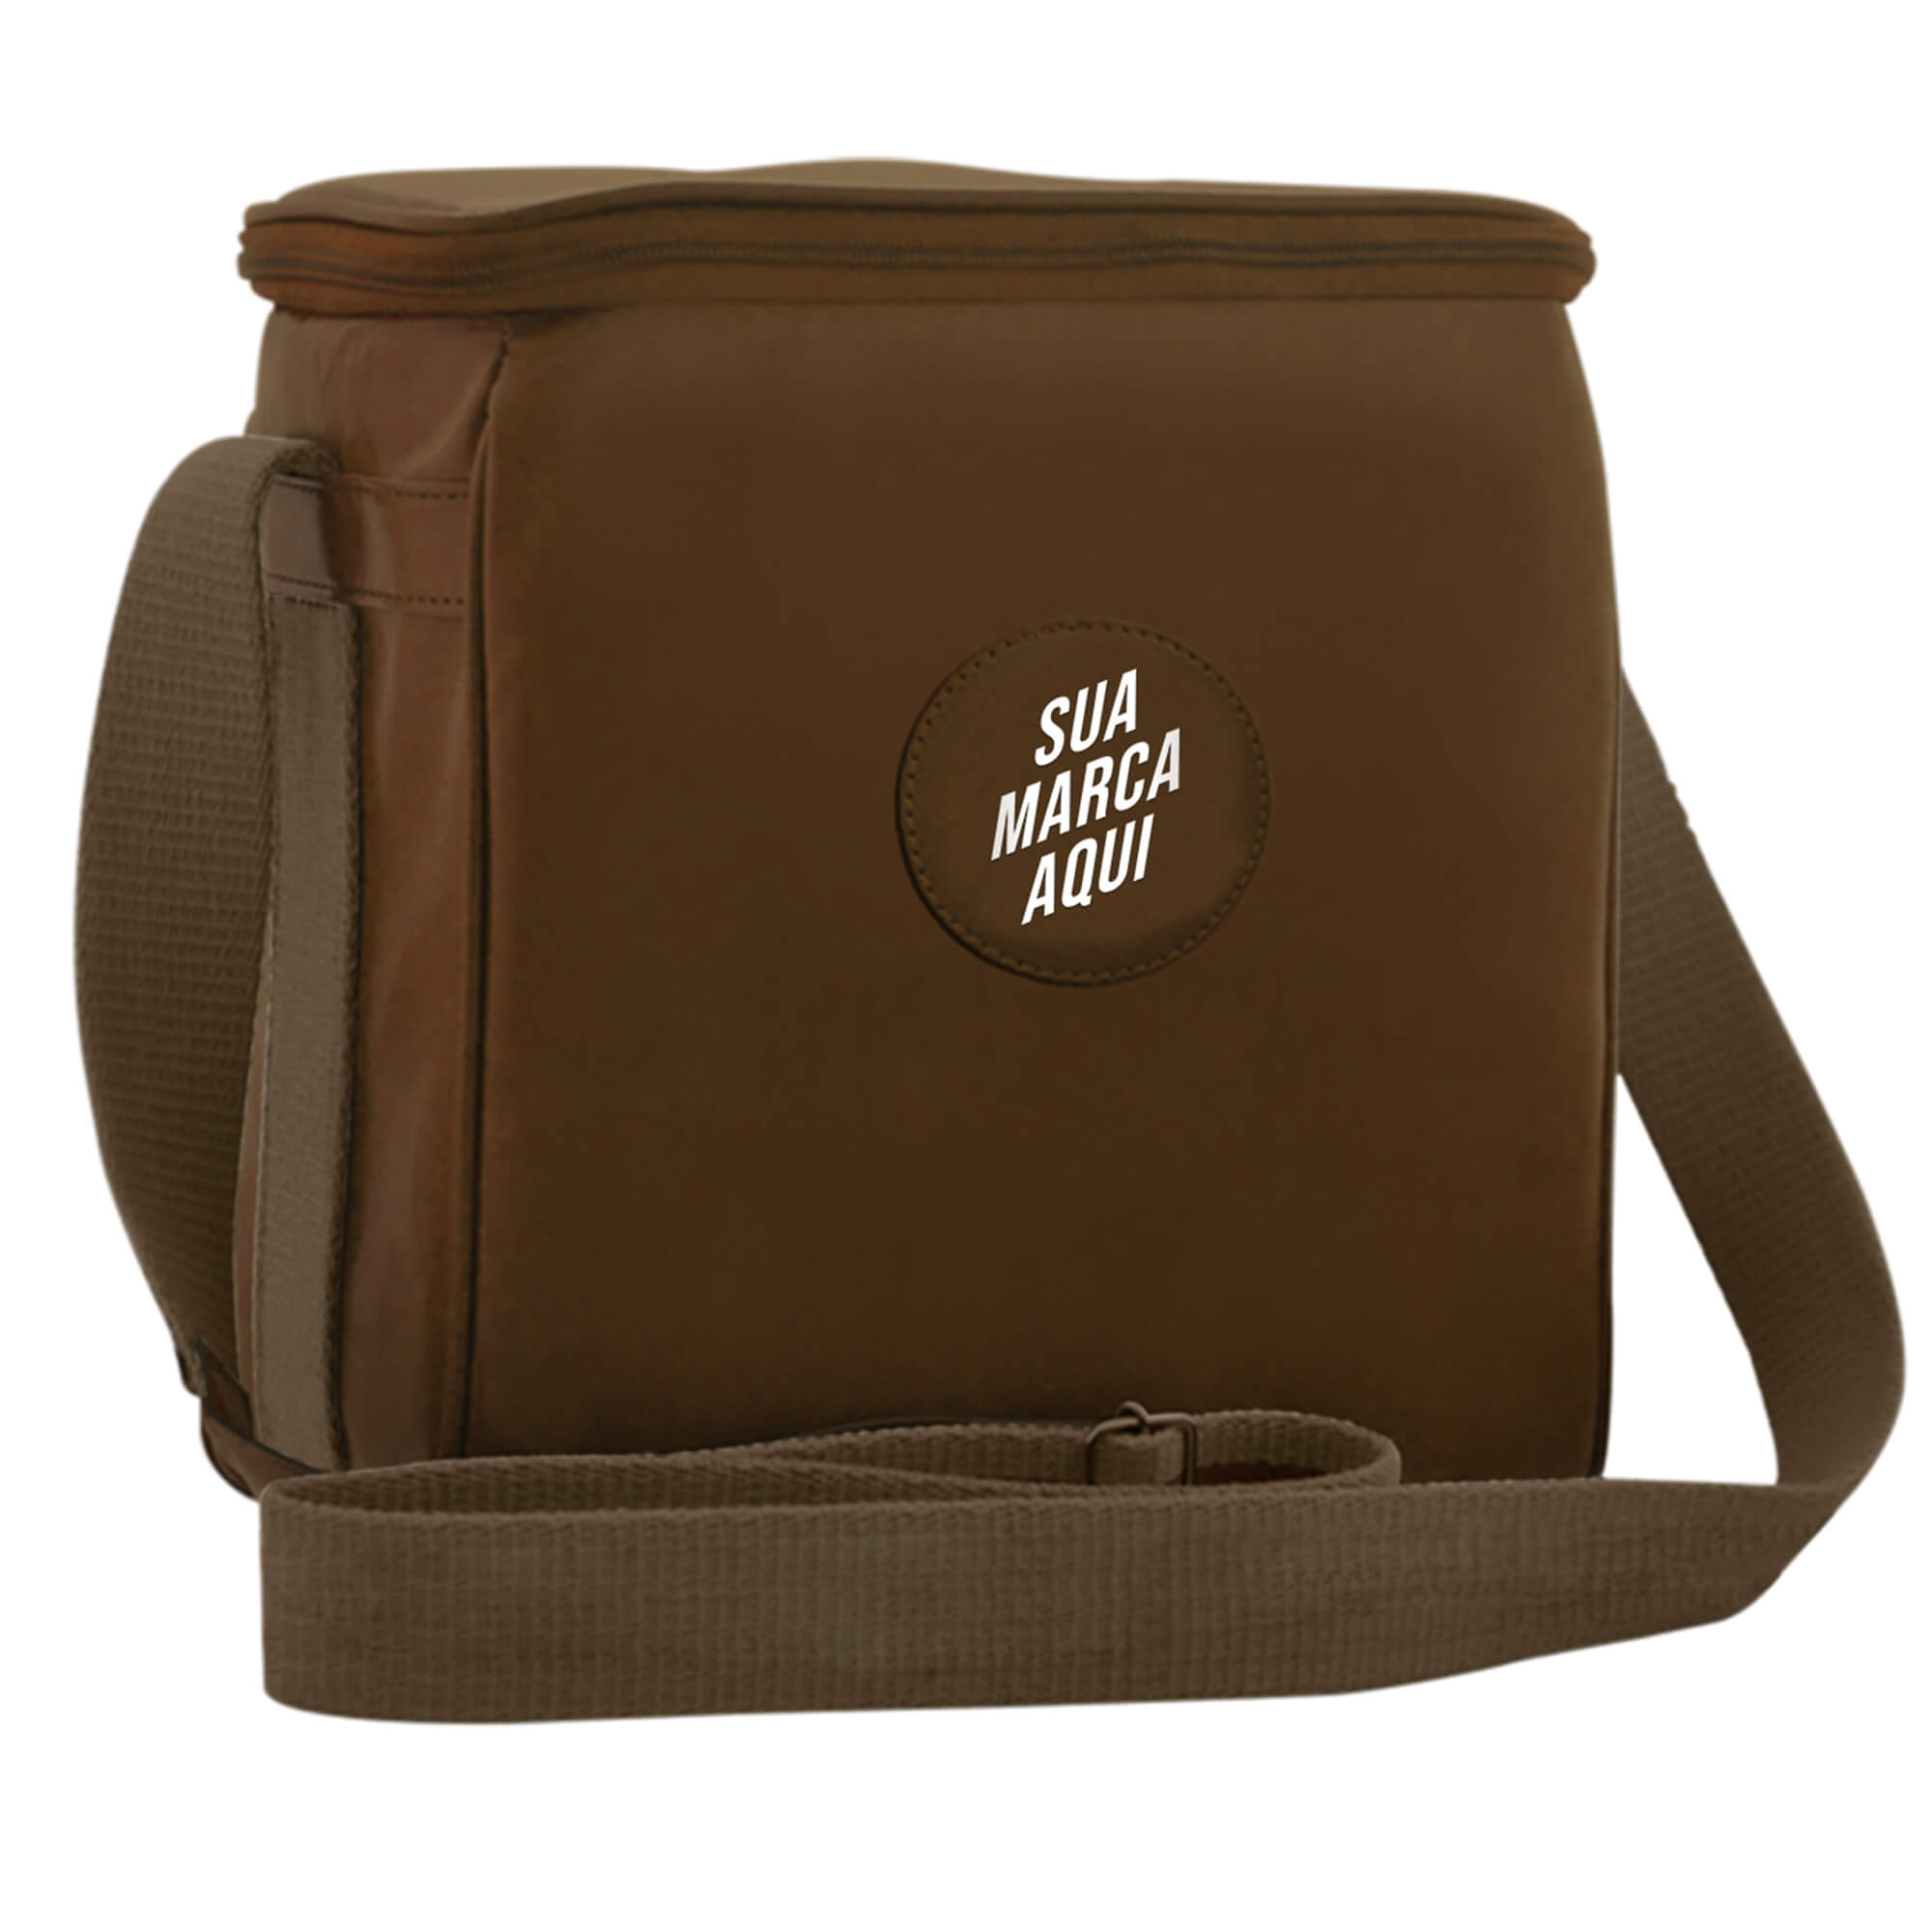 Growler Bag Travel personalizada para 2 growlers